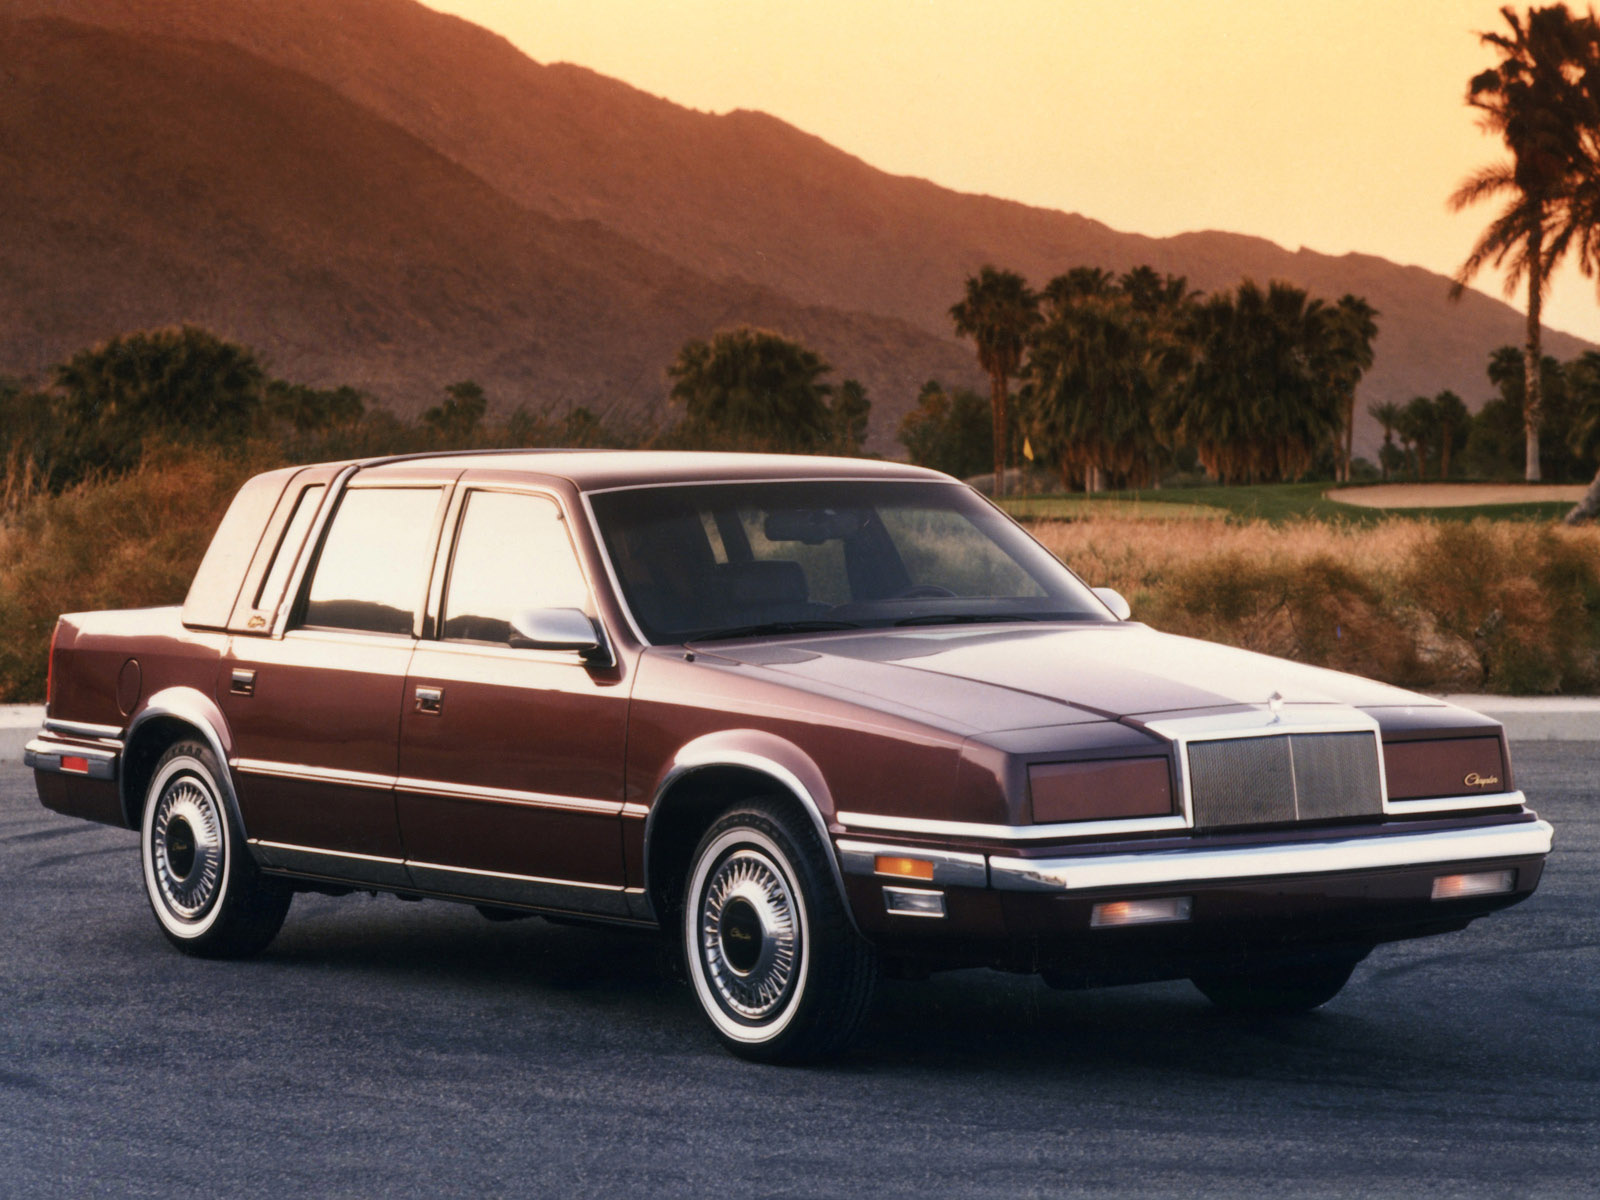 1988 Chrysler New Yorker Information And Photos Momentcar